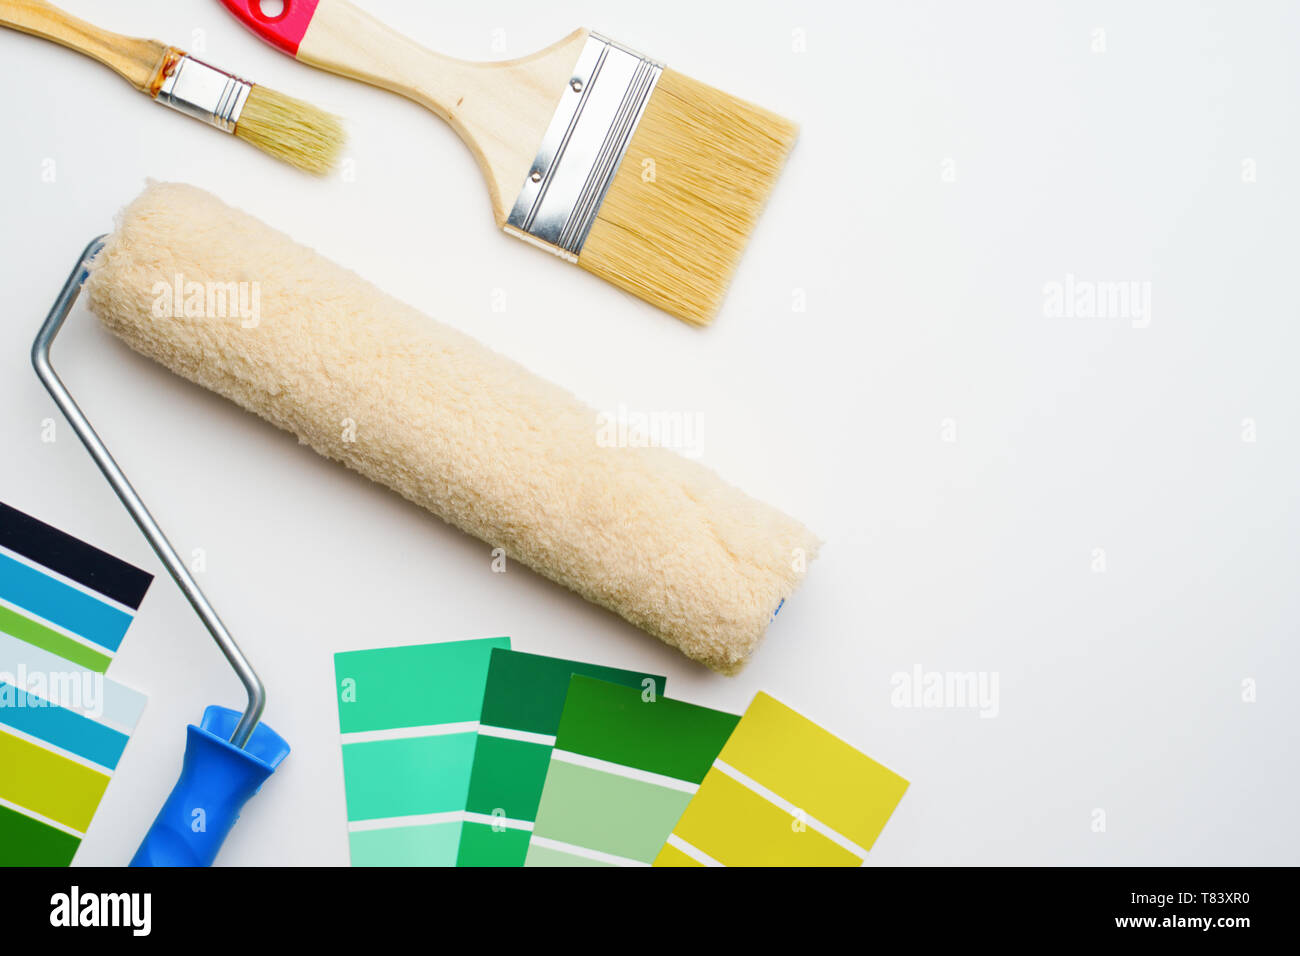 Photo of palette with blue and green colors, roller, brushes - Stock Image